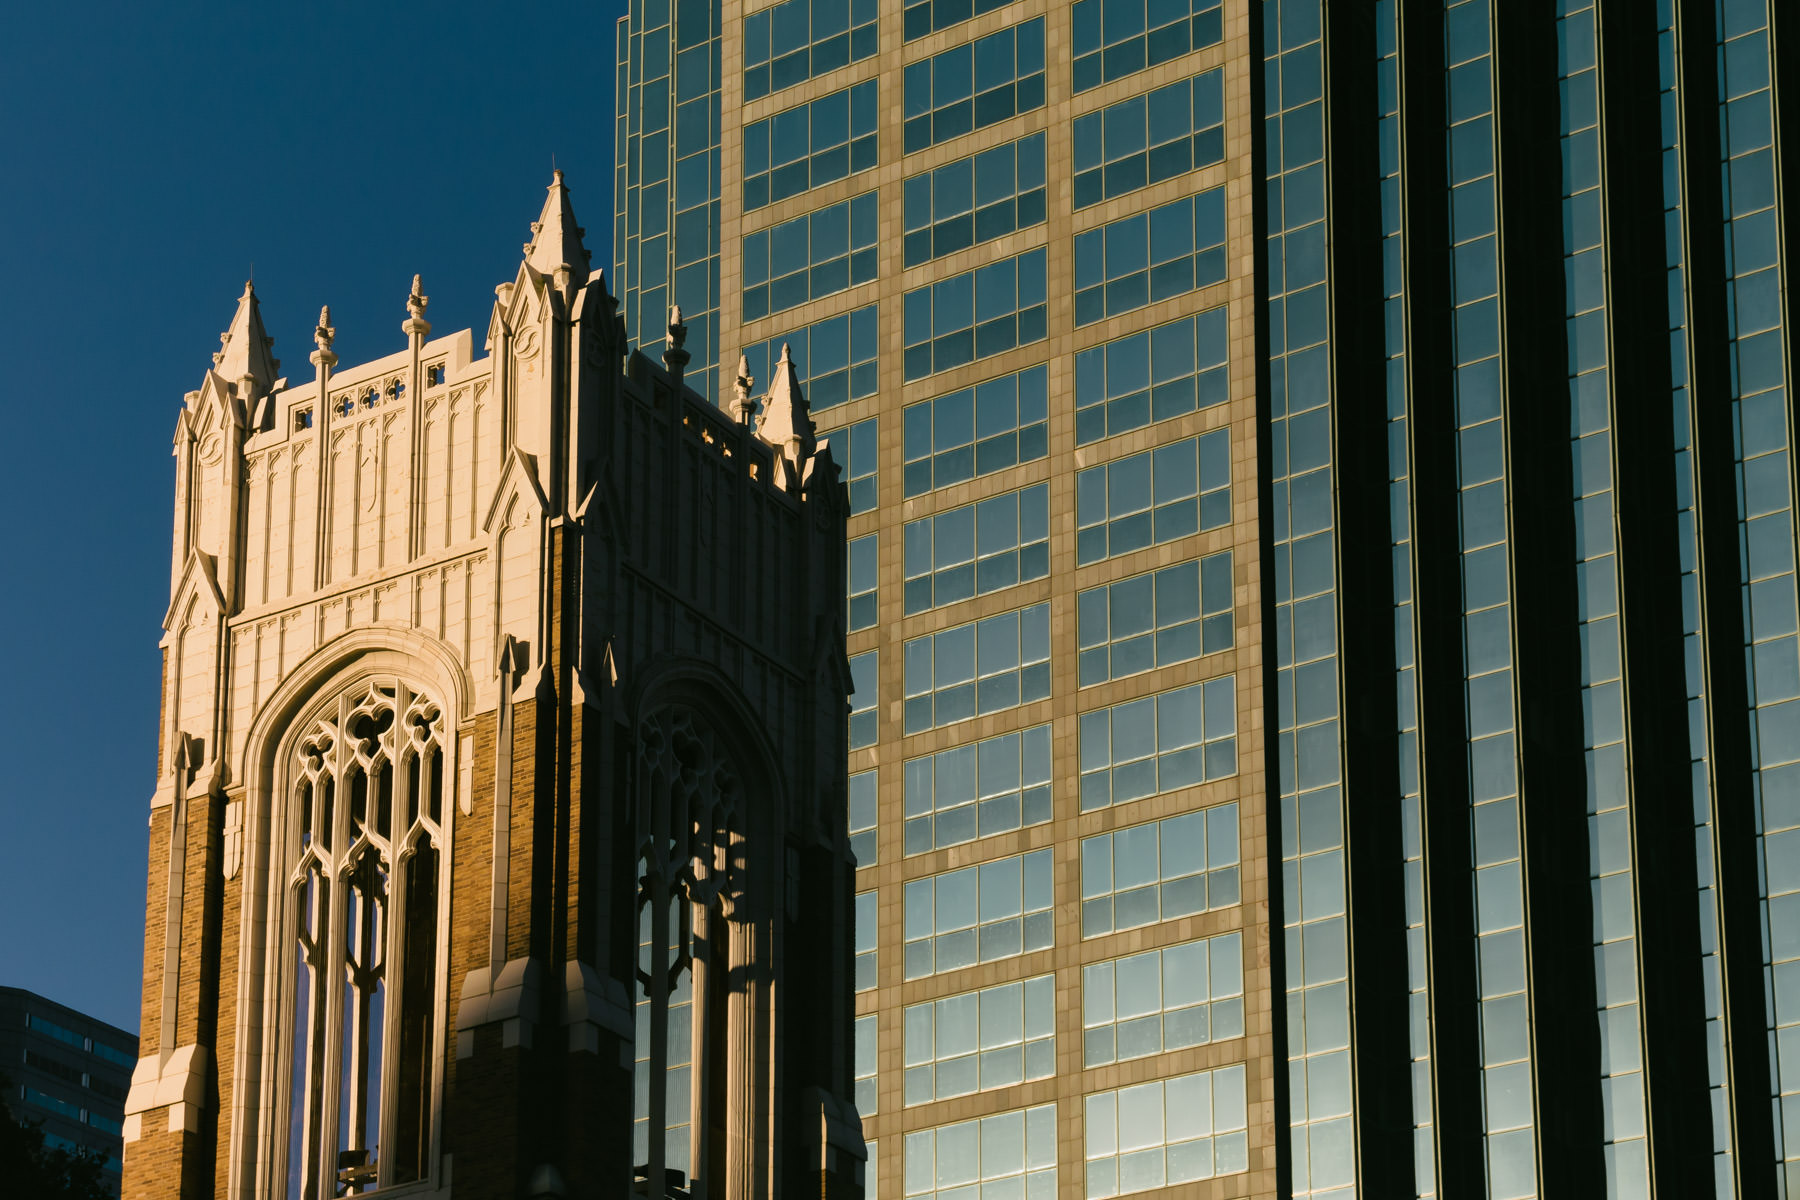 The bell tower of Dallas' First United Methodist Church rises to meet the morning sun amongst the skyscrapers of the city's downtown.